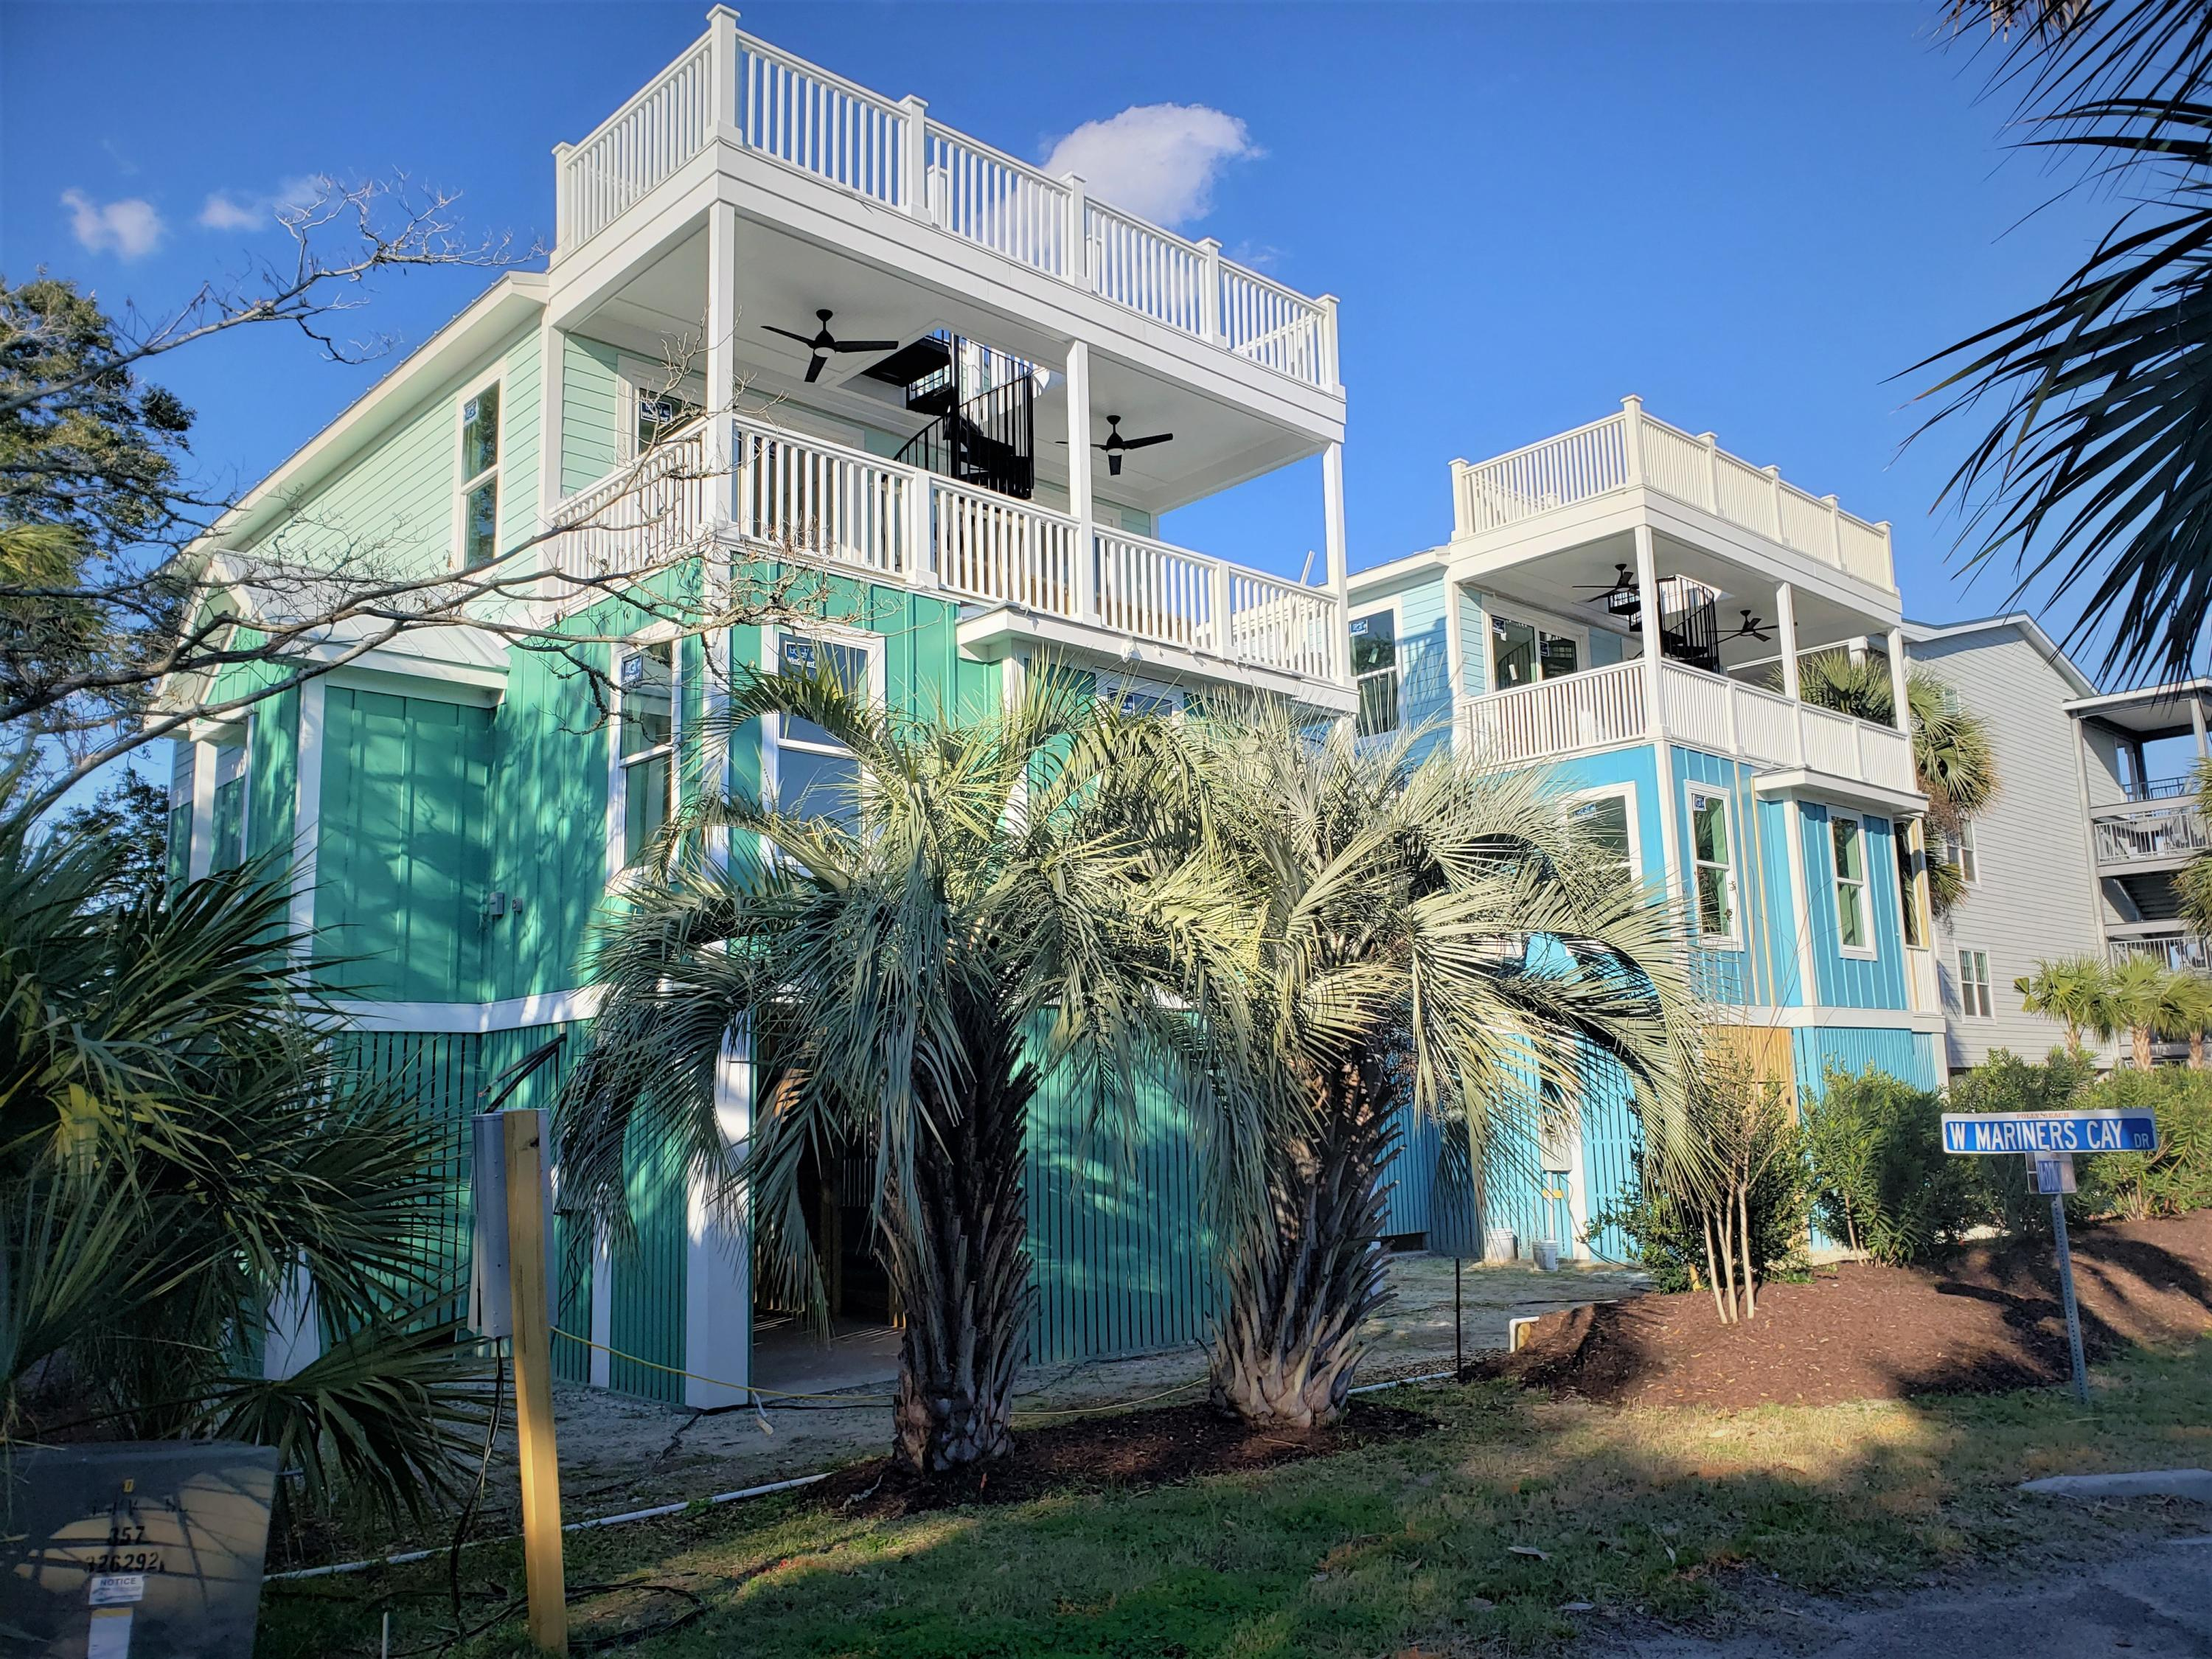 1004 W Mariners Cay Drive Folly Beach, SC 29439